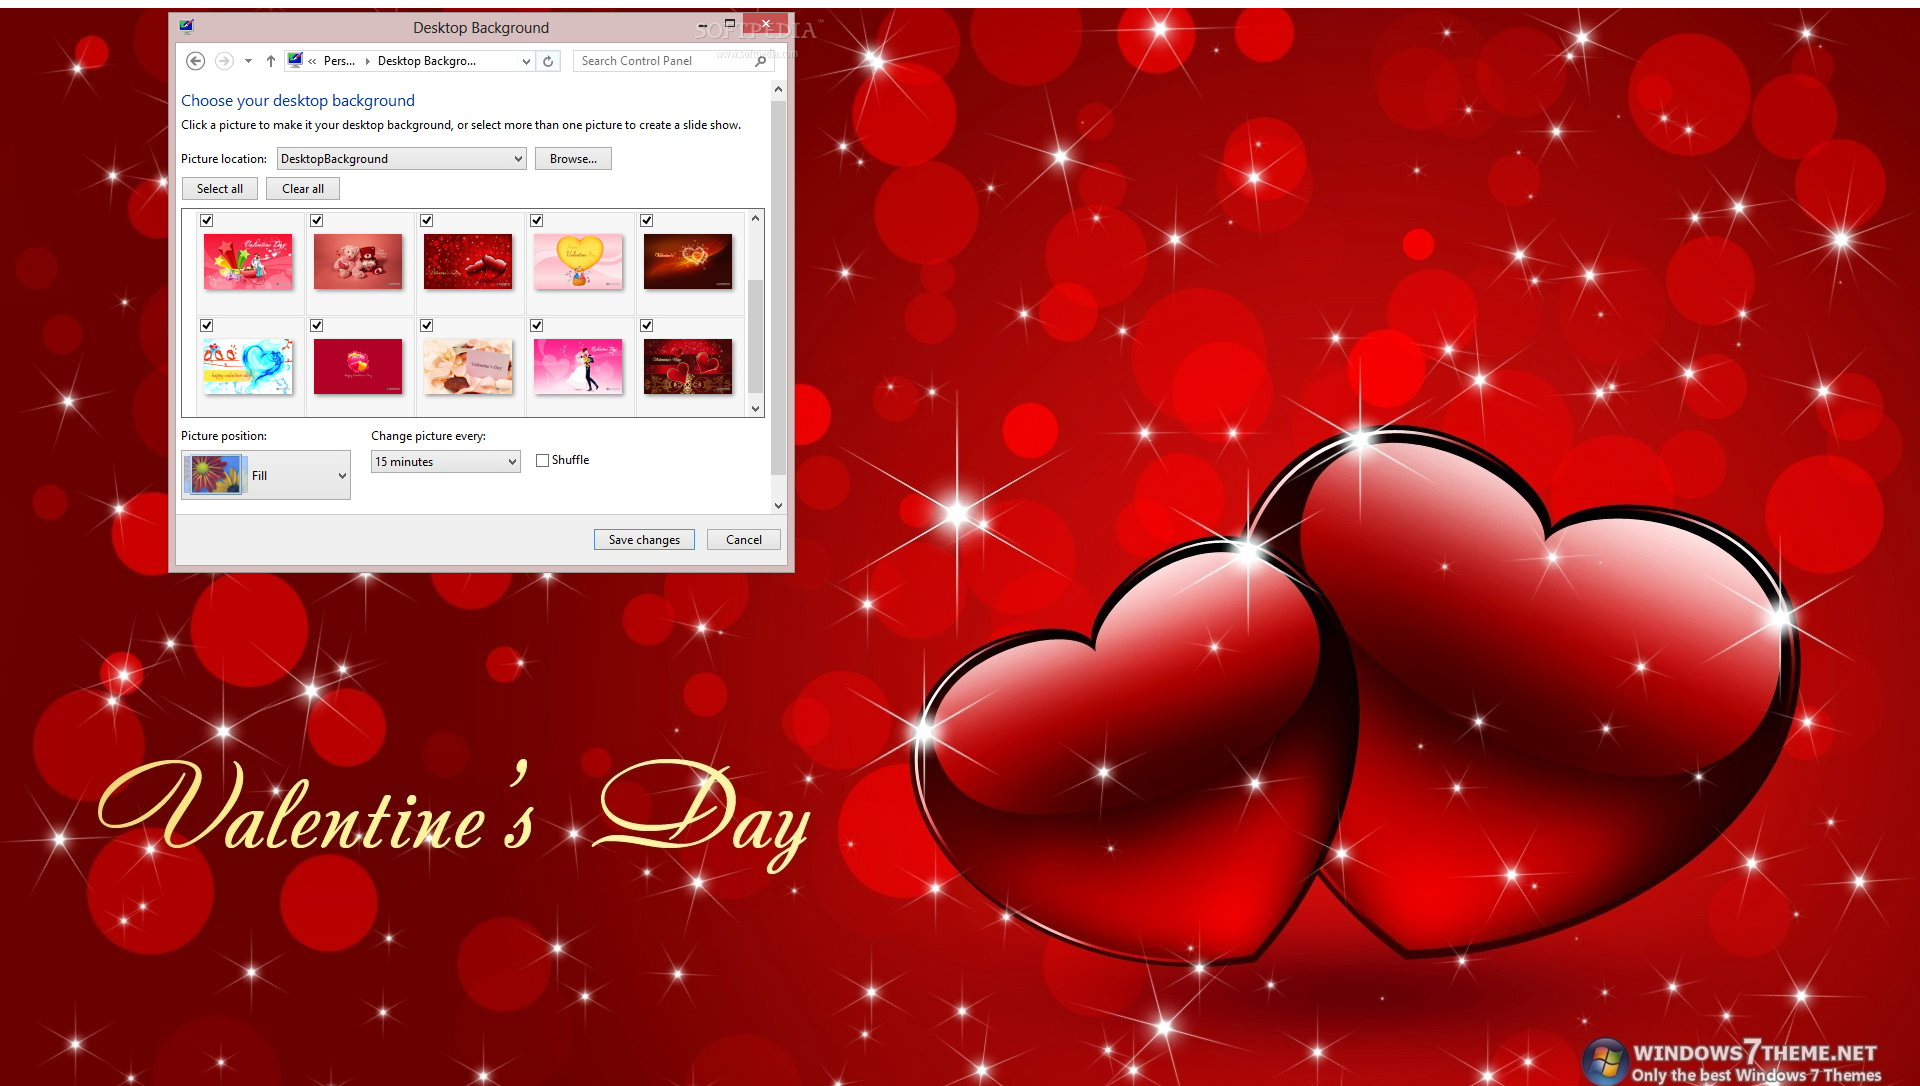 Happy Valentine's Day Windows 7 Theme